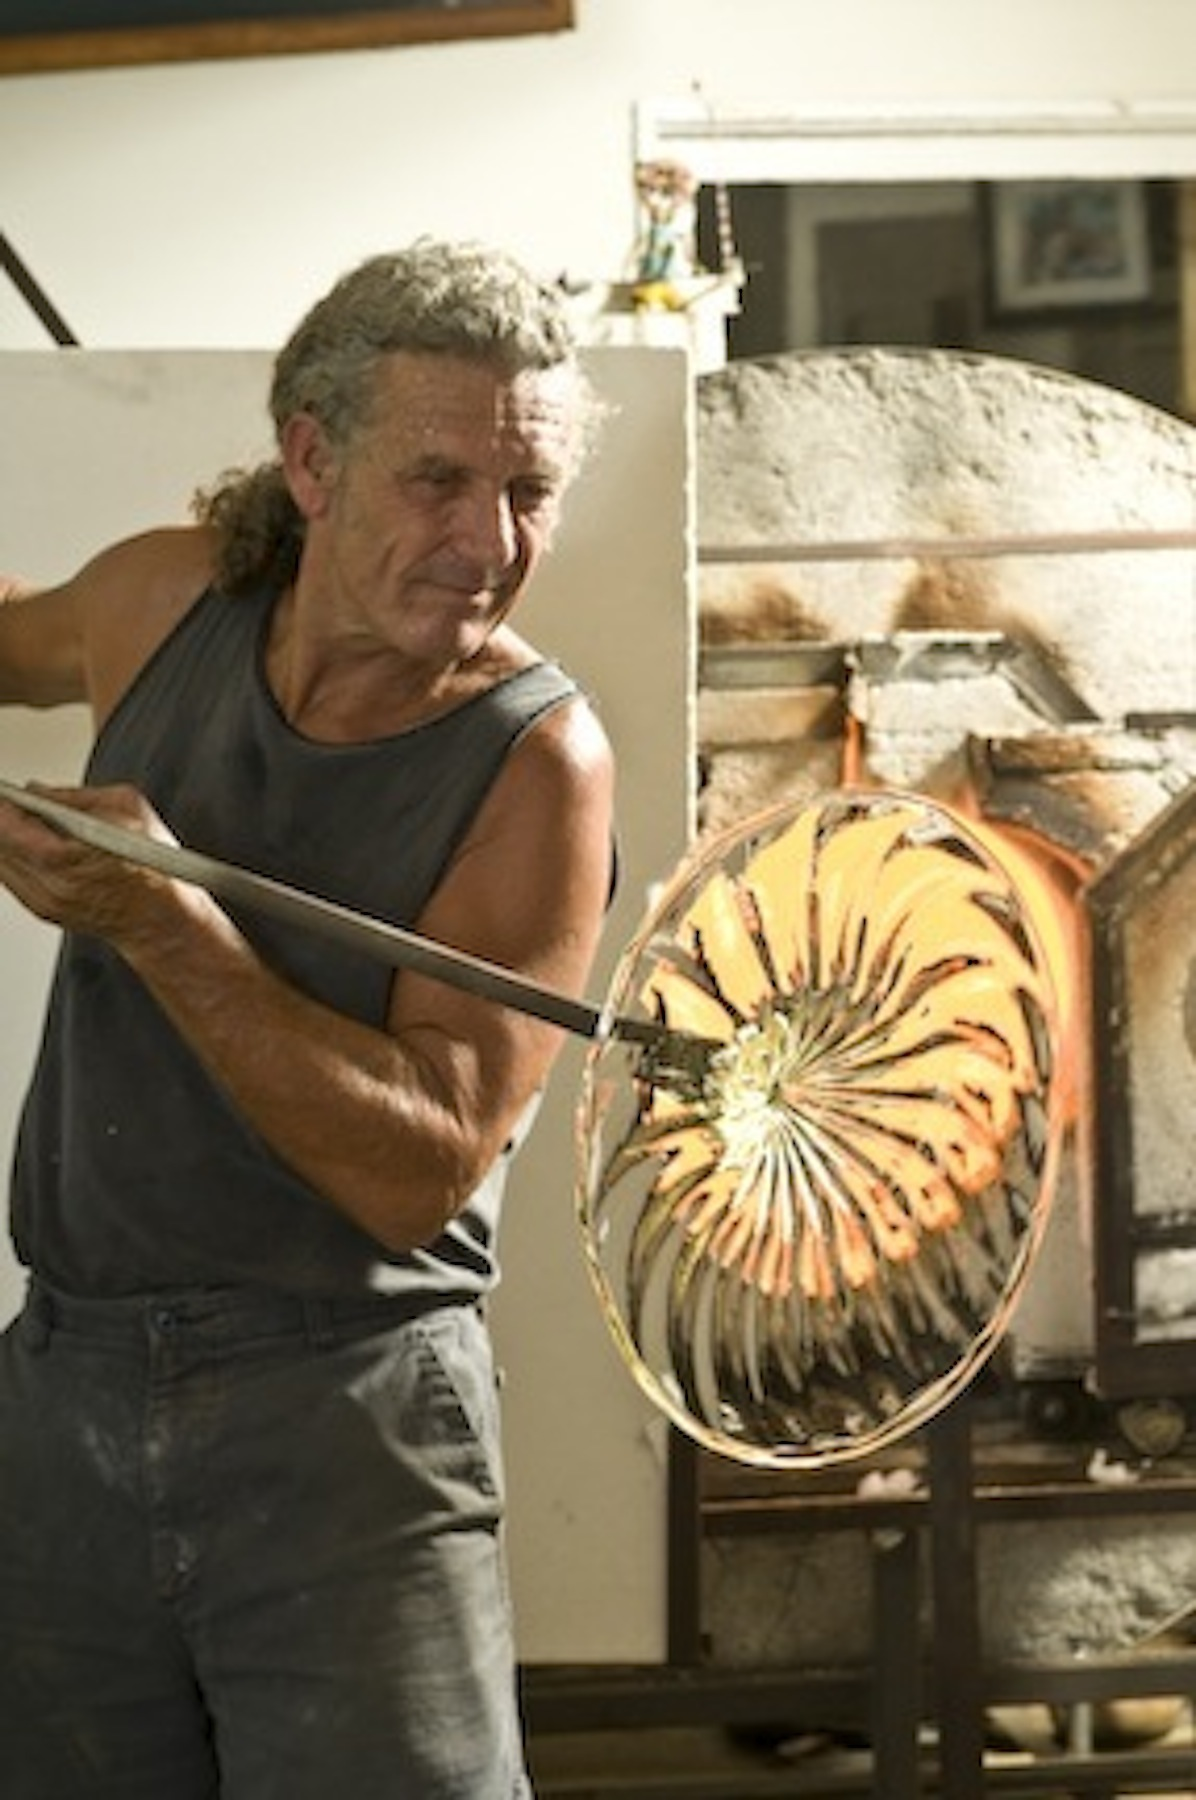 Rick spinning a rondel for some wall art.